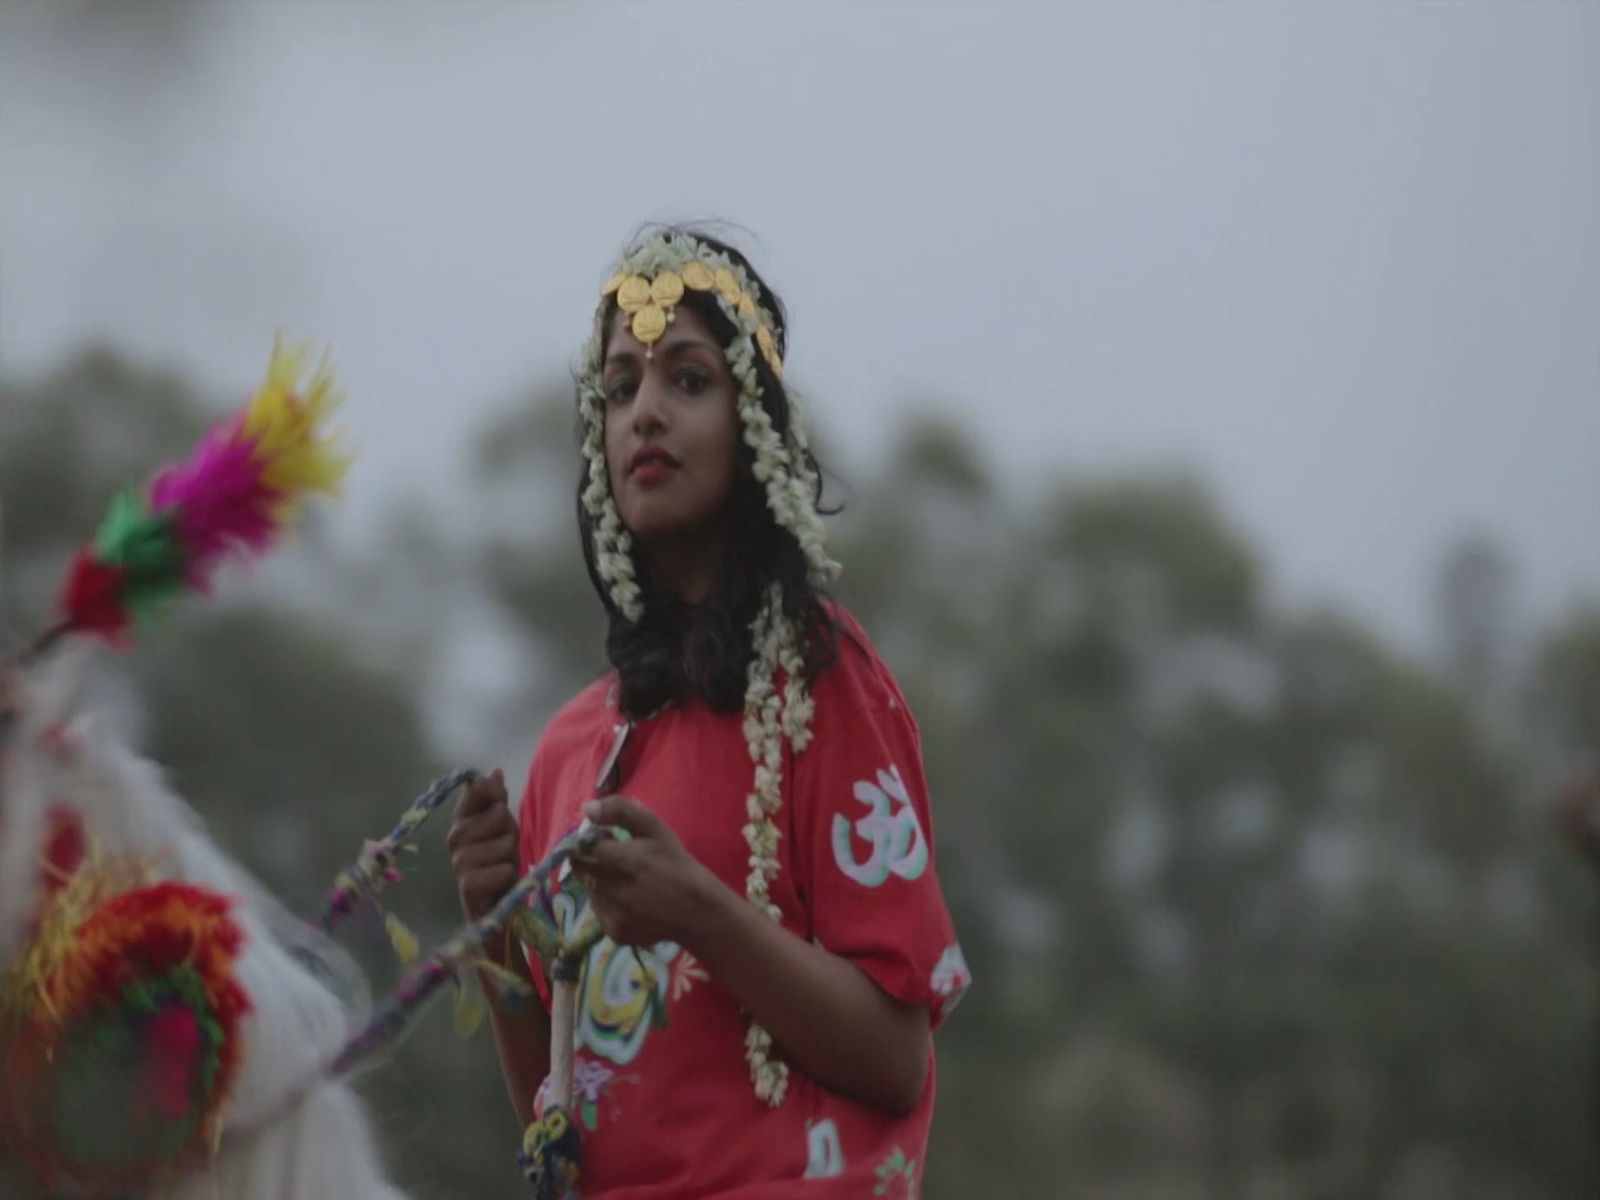 M.I.A. – MATAHDATAH SCROLL 01 BROADER THAN A BORDER